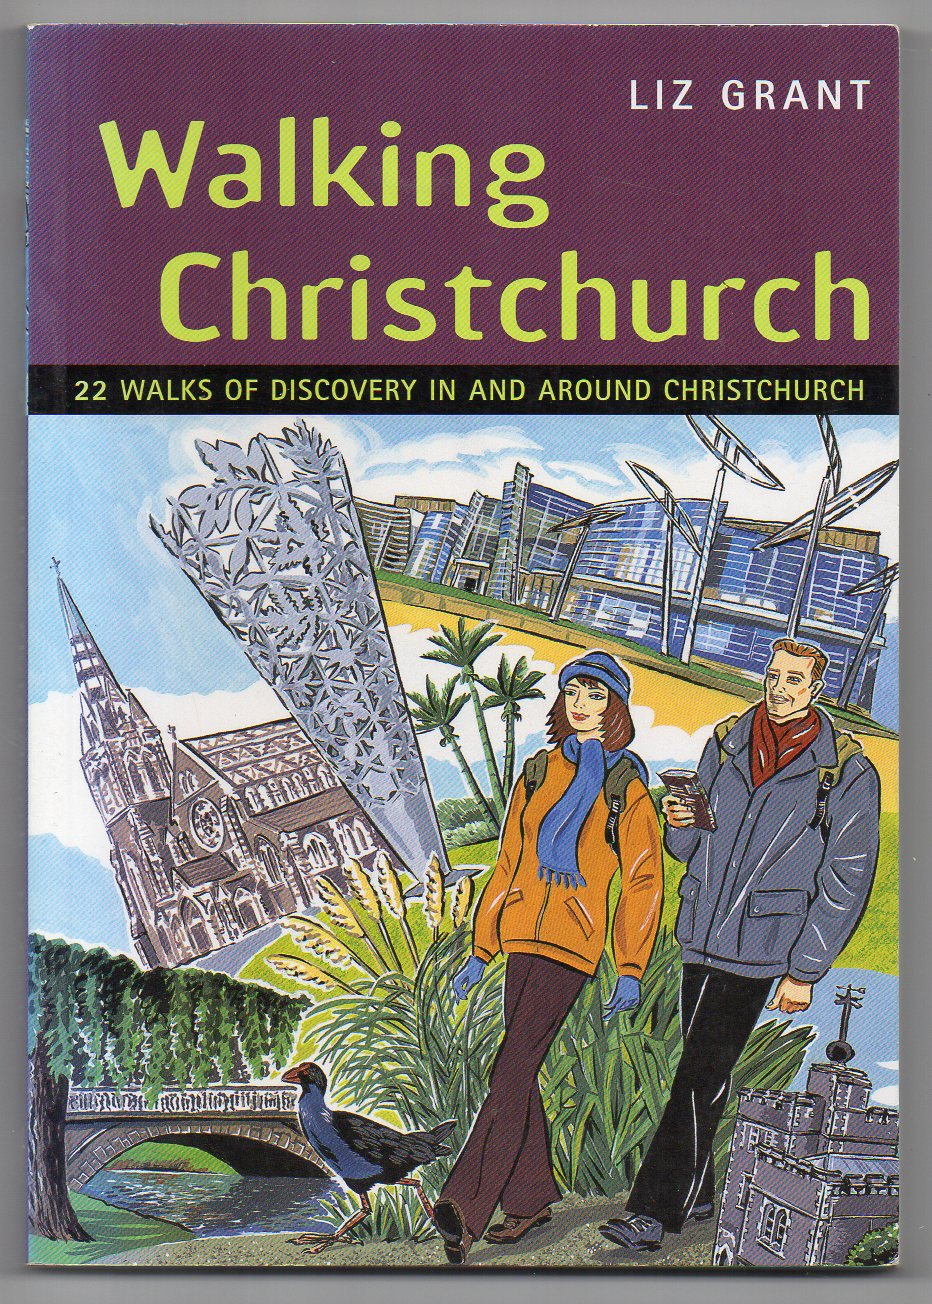 Image for Walking Christchurch: 22 Walks of Discovery In and Around Christchurch